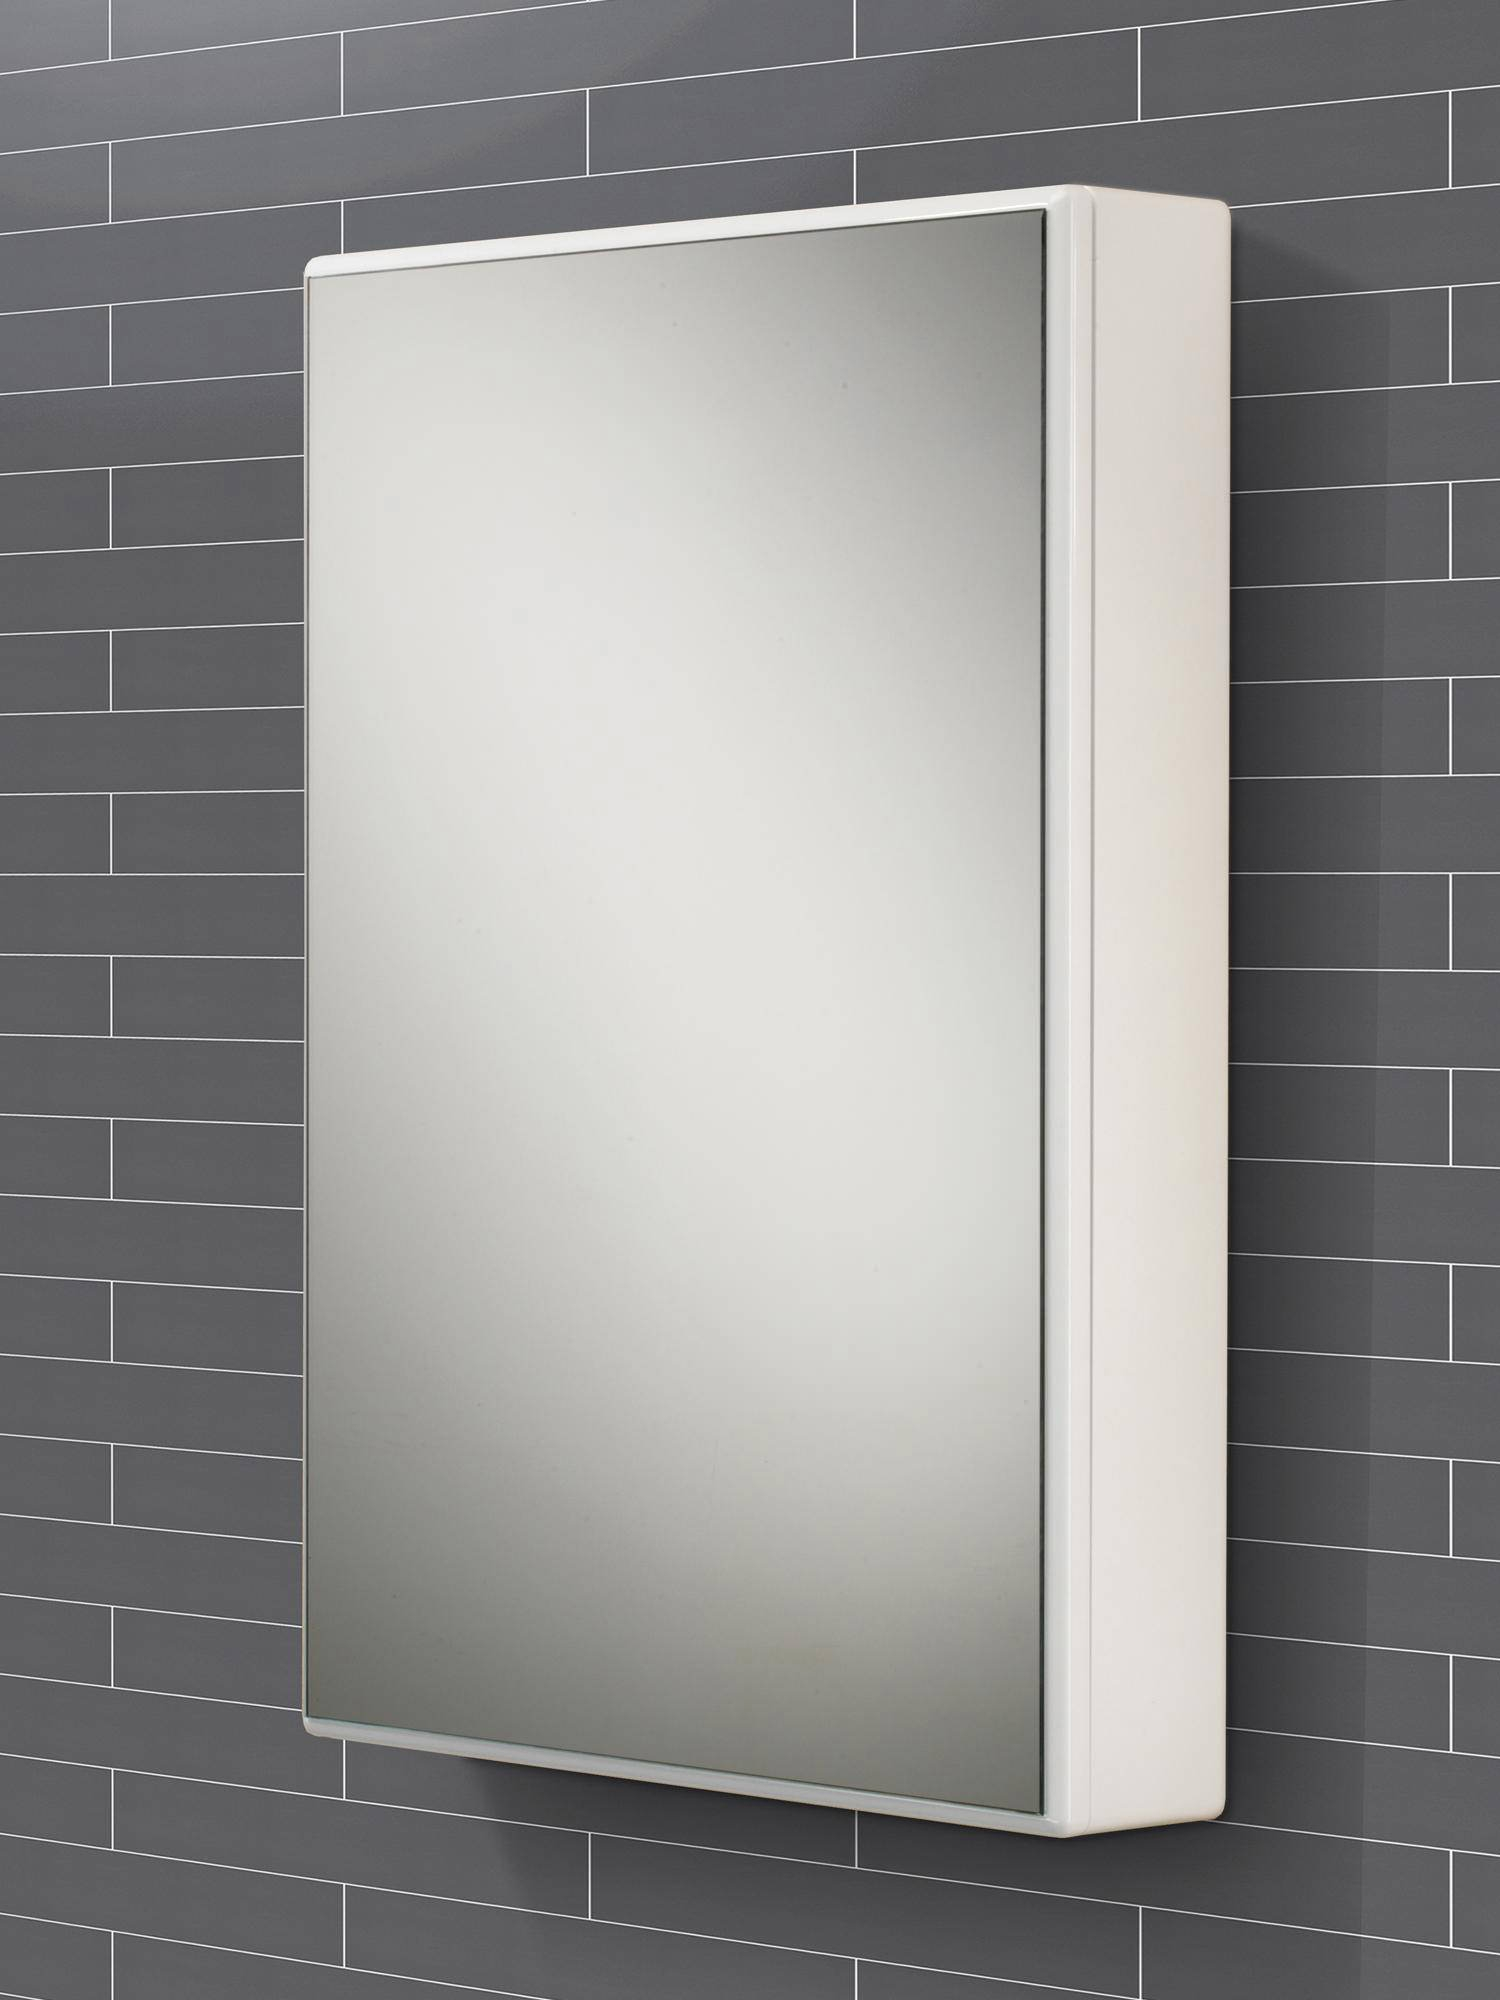 Replacement Mirror Doors For Bathroom Cabinets